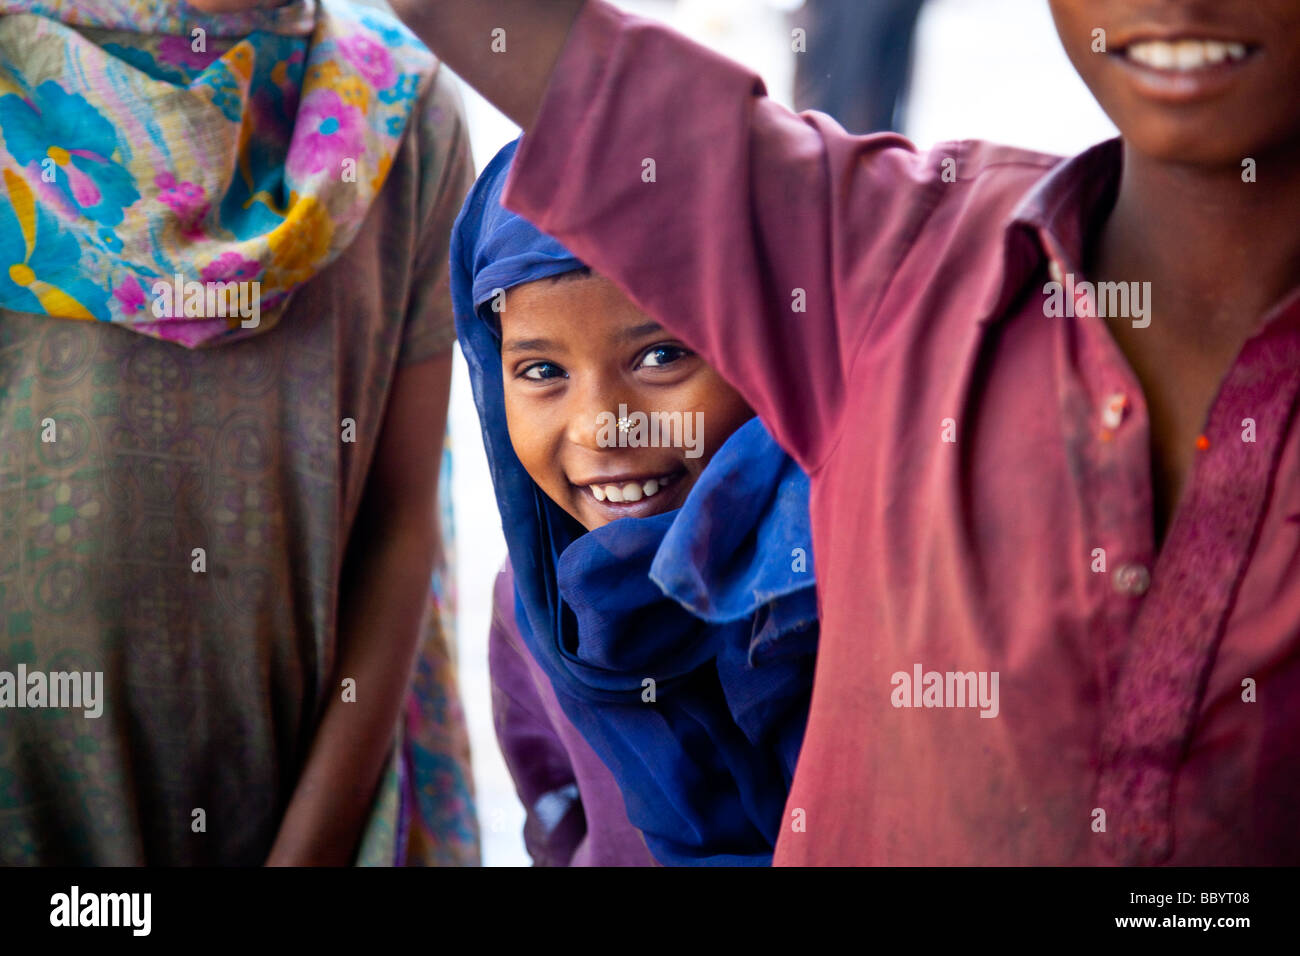 beautiful young muslim girl in delhi india stock photo: 24583112 - alamy